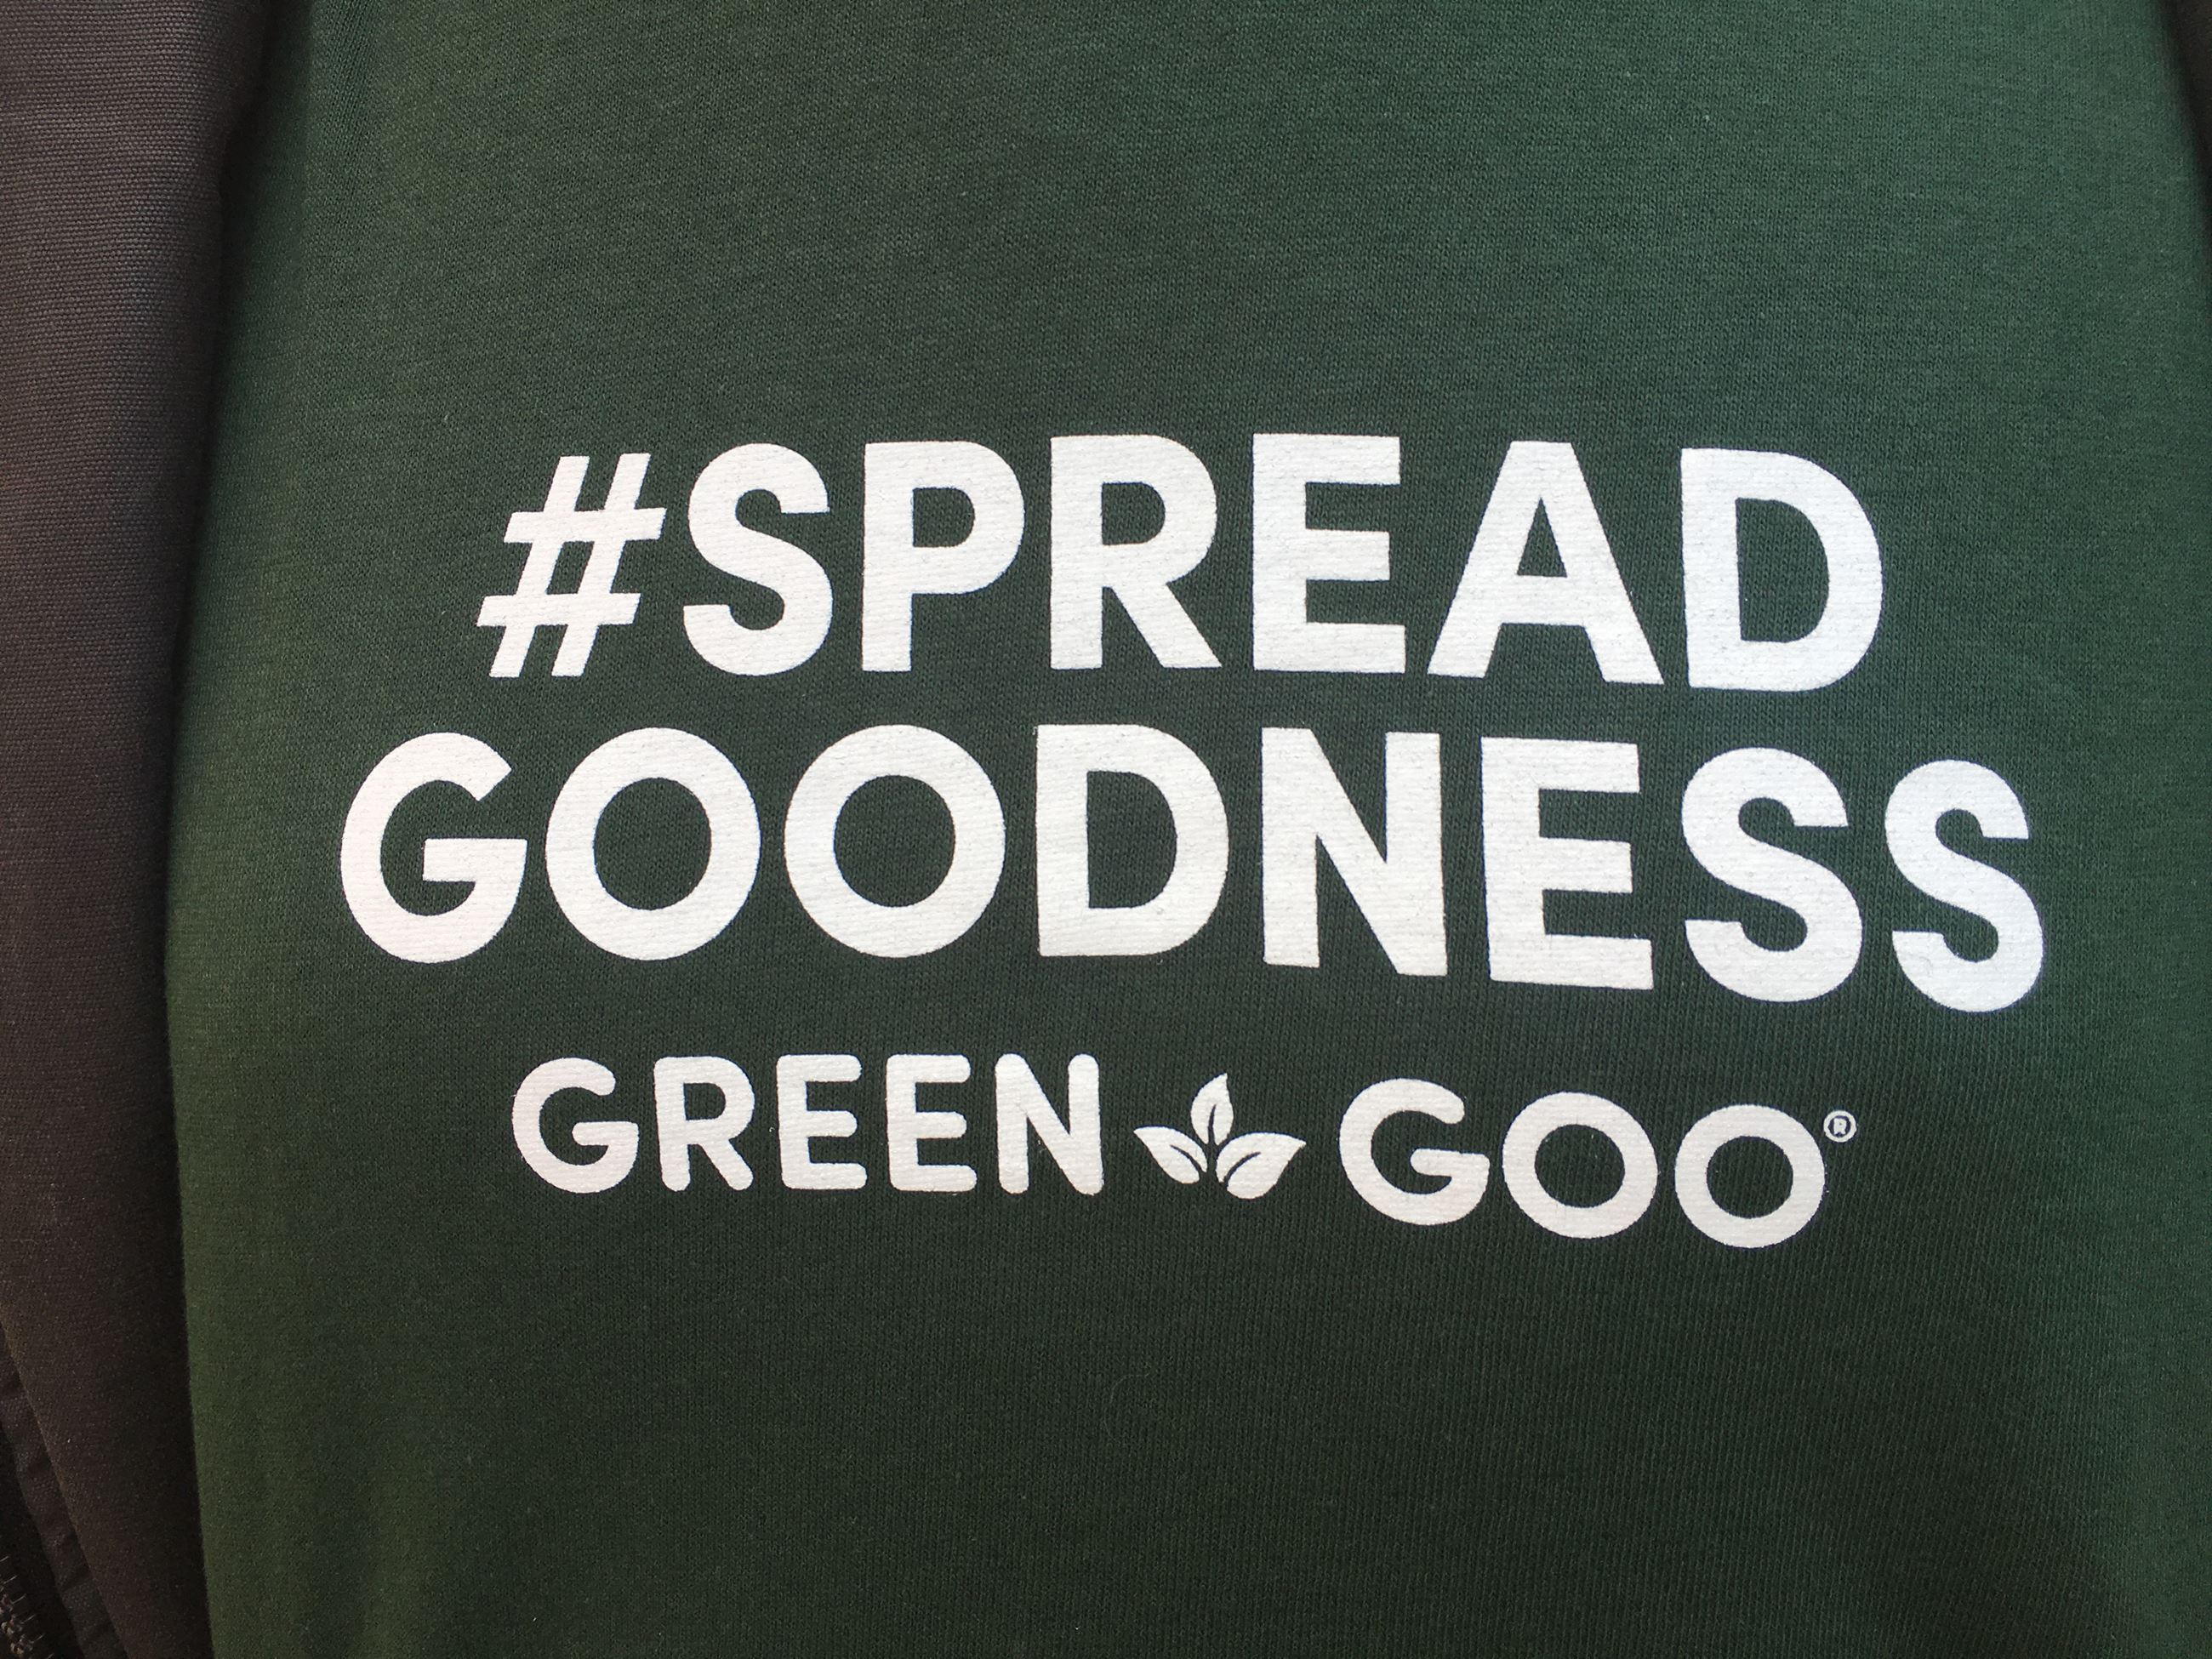 spread goodness